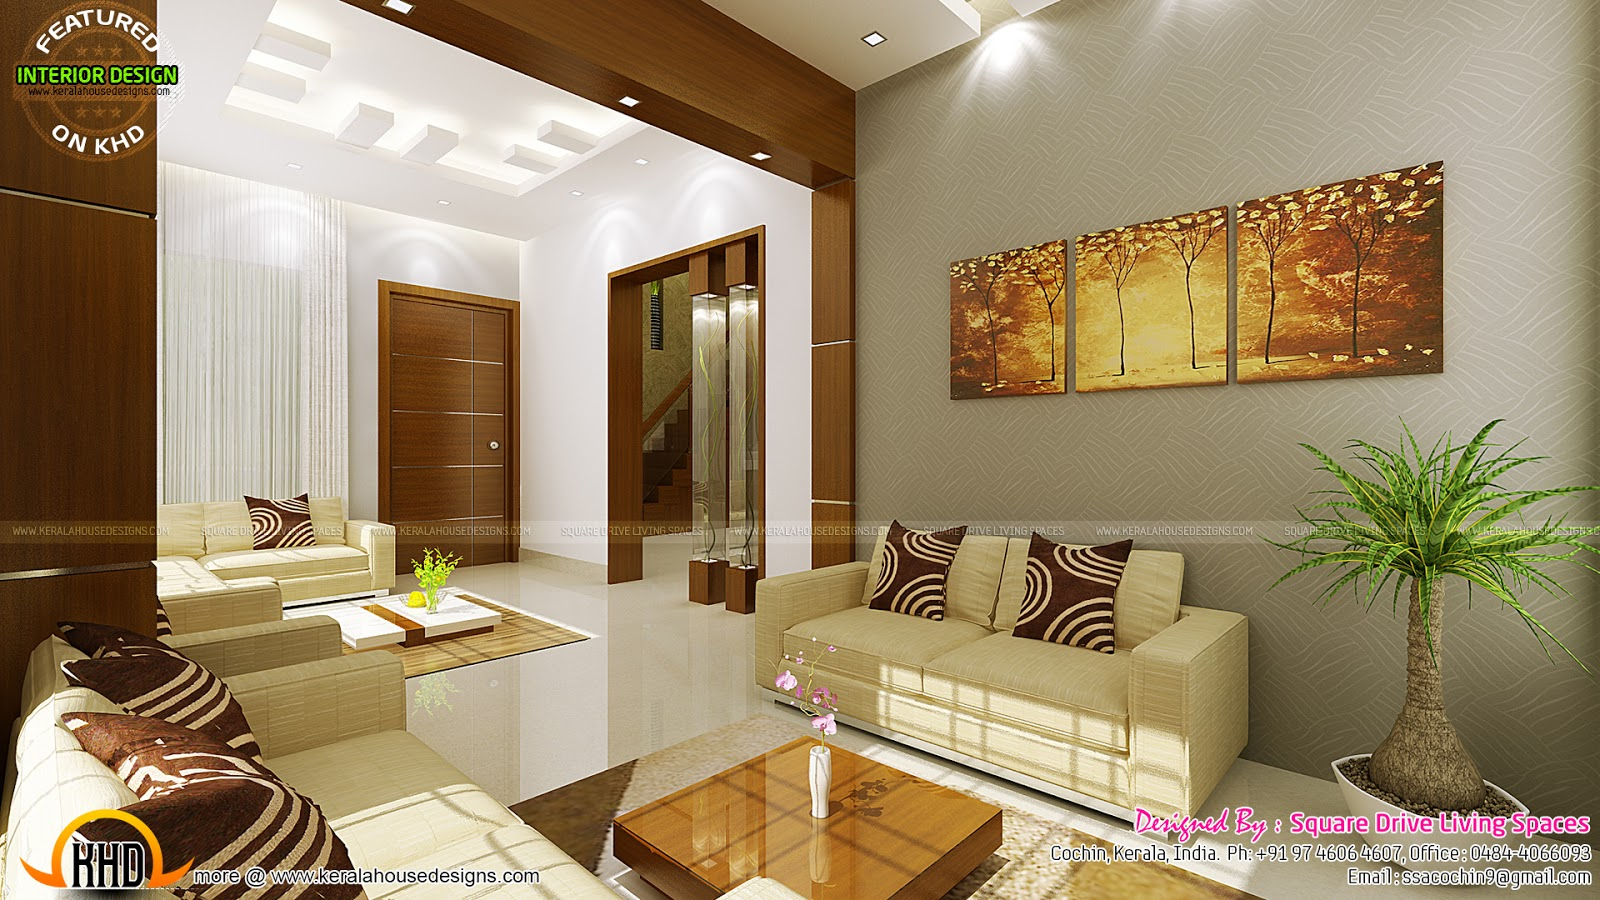 Contemporary kitchen dining and living room kerala home for House interior design kerala photos